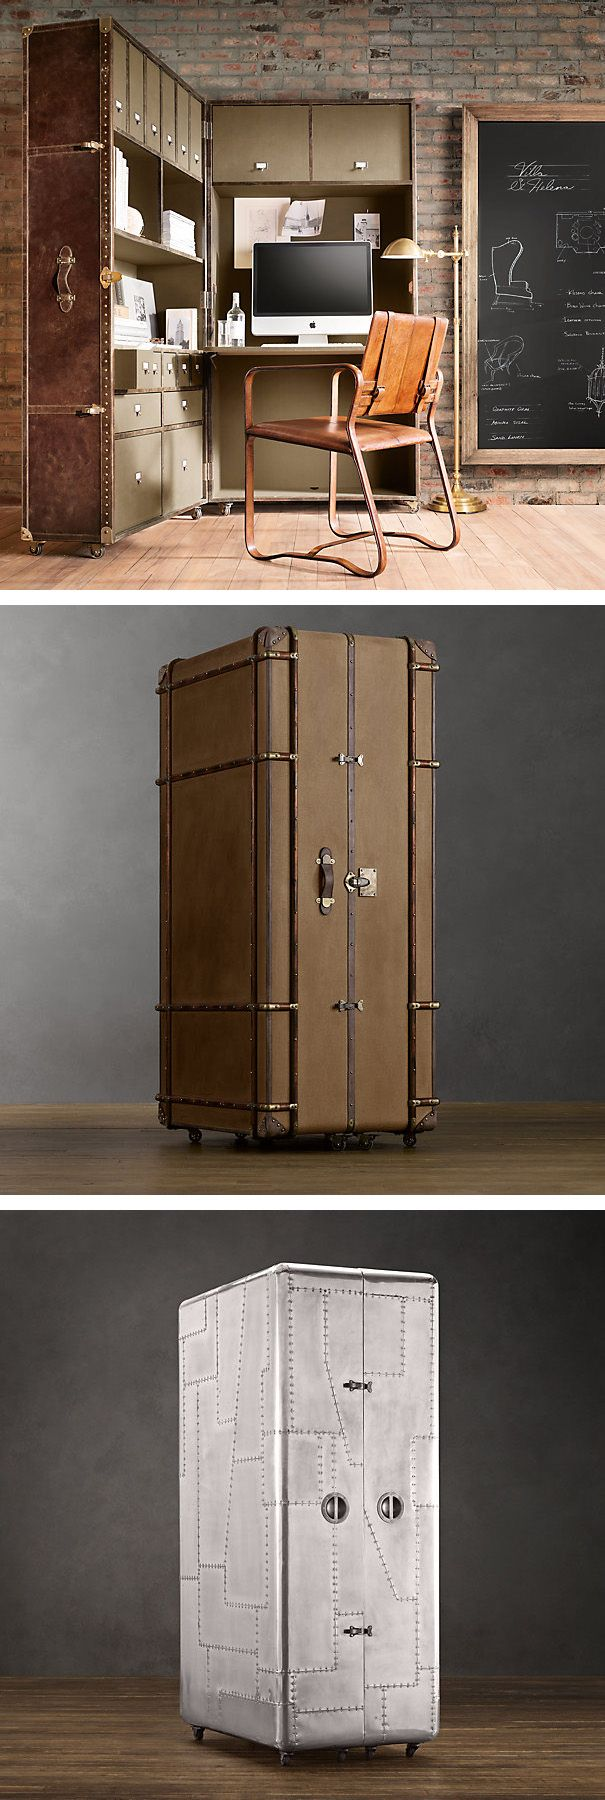 Restoration Hardware Trunk Secretaries up the ante – and the style factor – when it comes to hidden offices. Each one looks like an antique or unusual trunk and can almost serve as heirloom art; when open, it's a fully-equipped office on wheels.